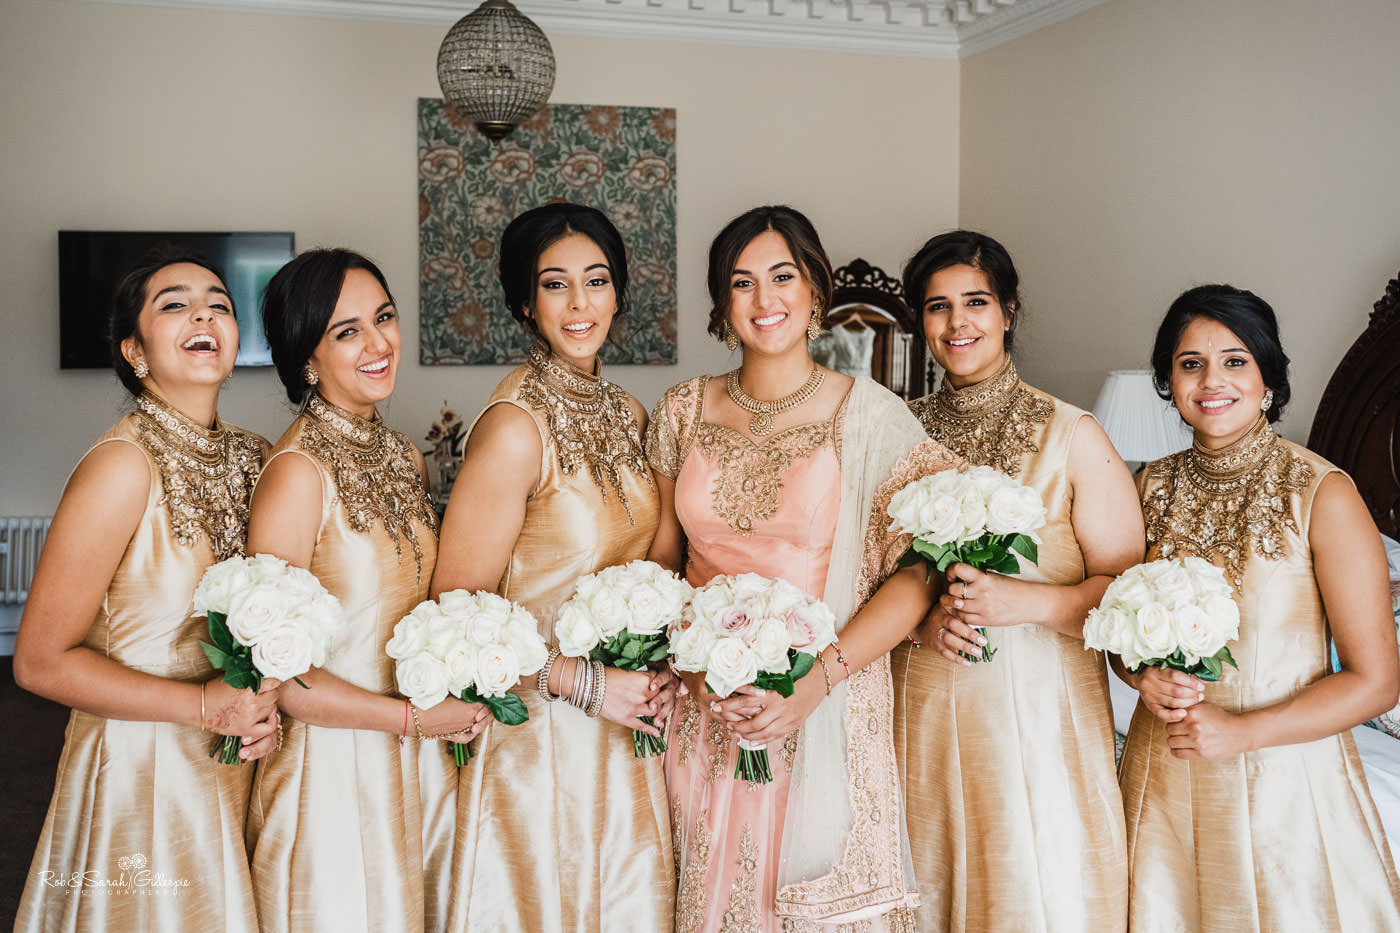 Bride and bridesmaids prepare for fusion wedding at Pendrell Hall